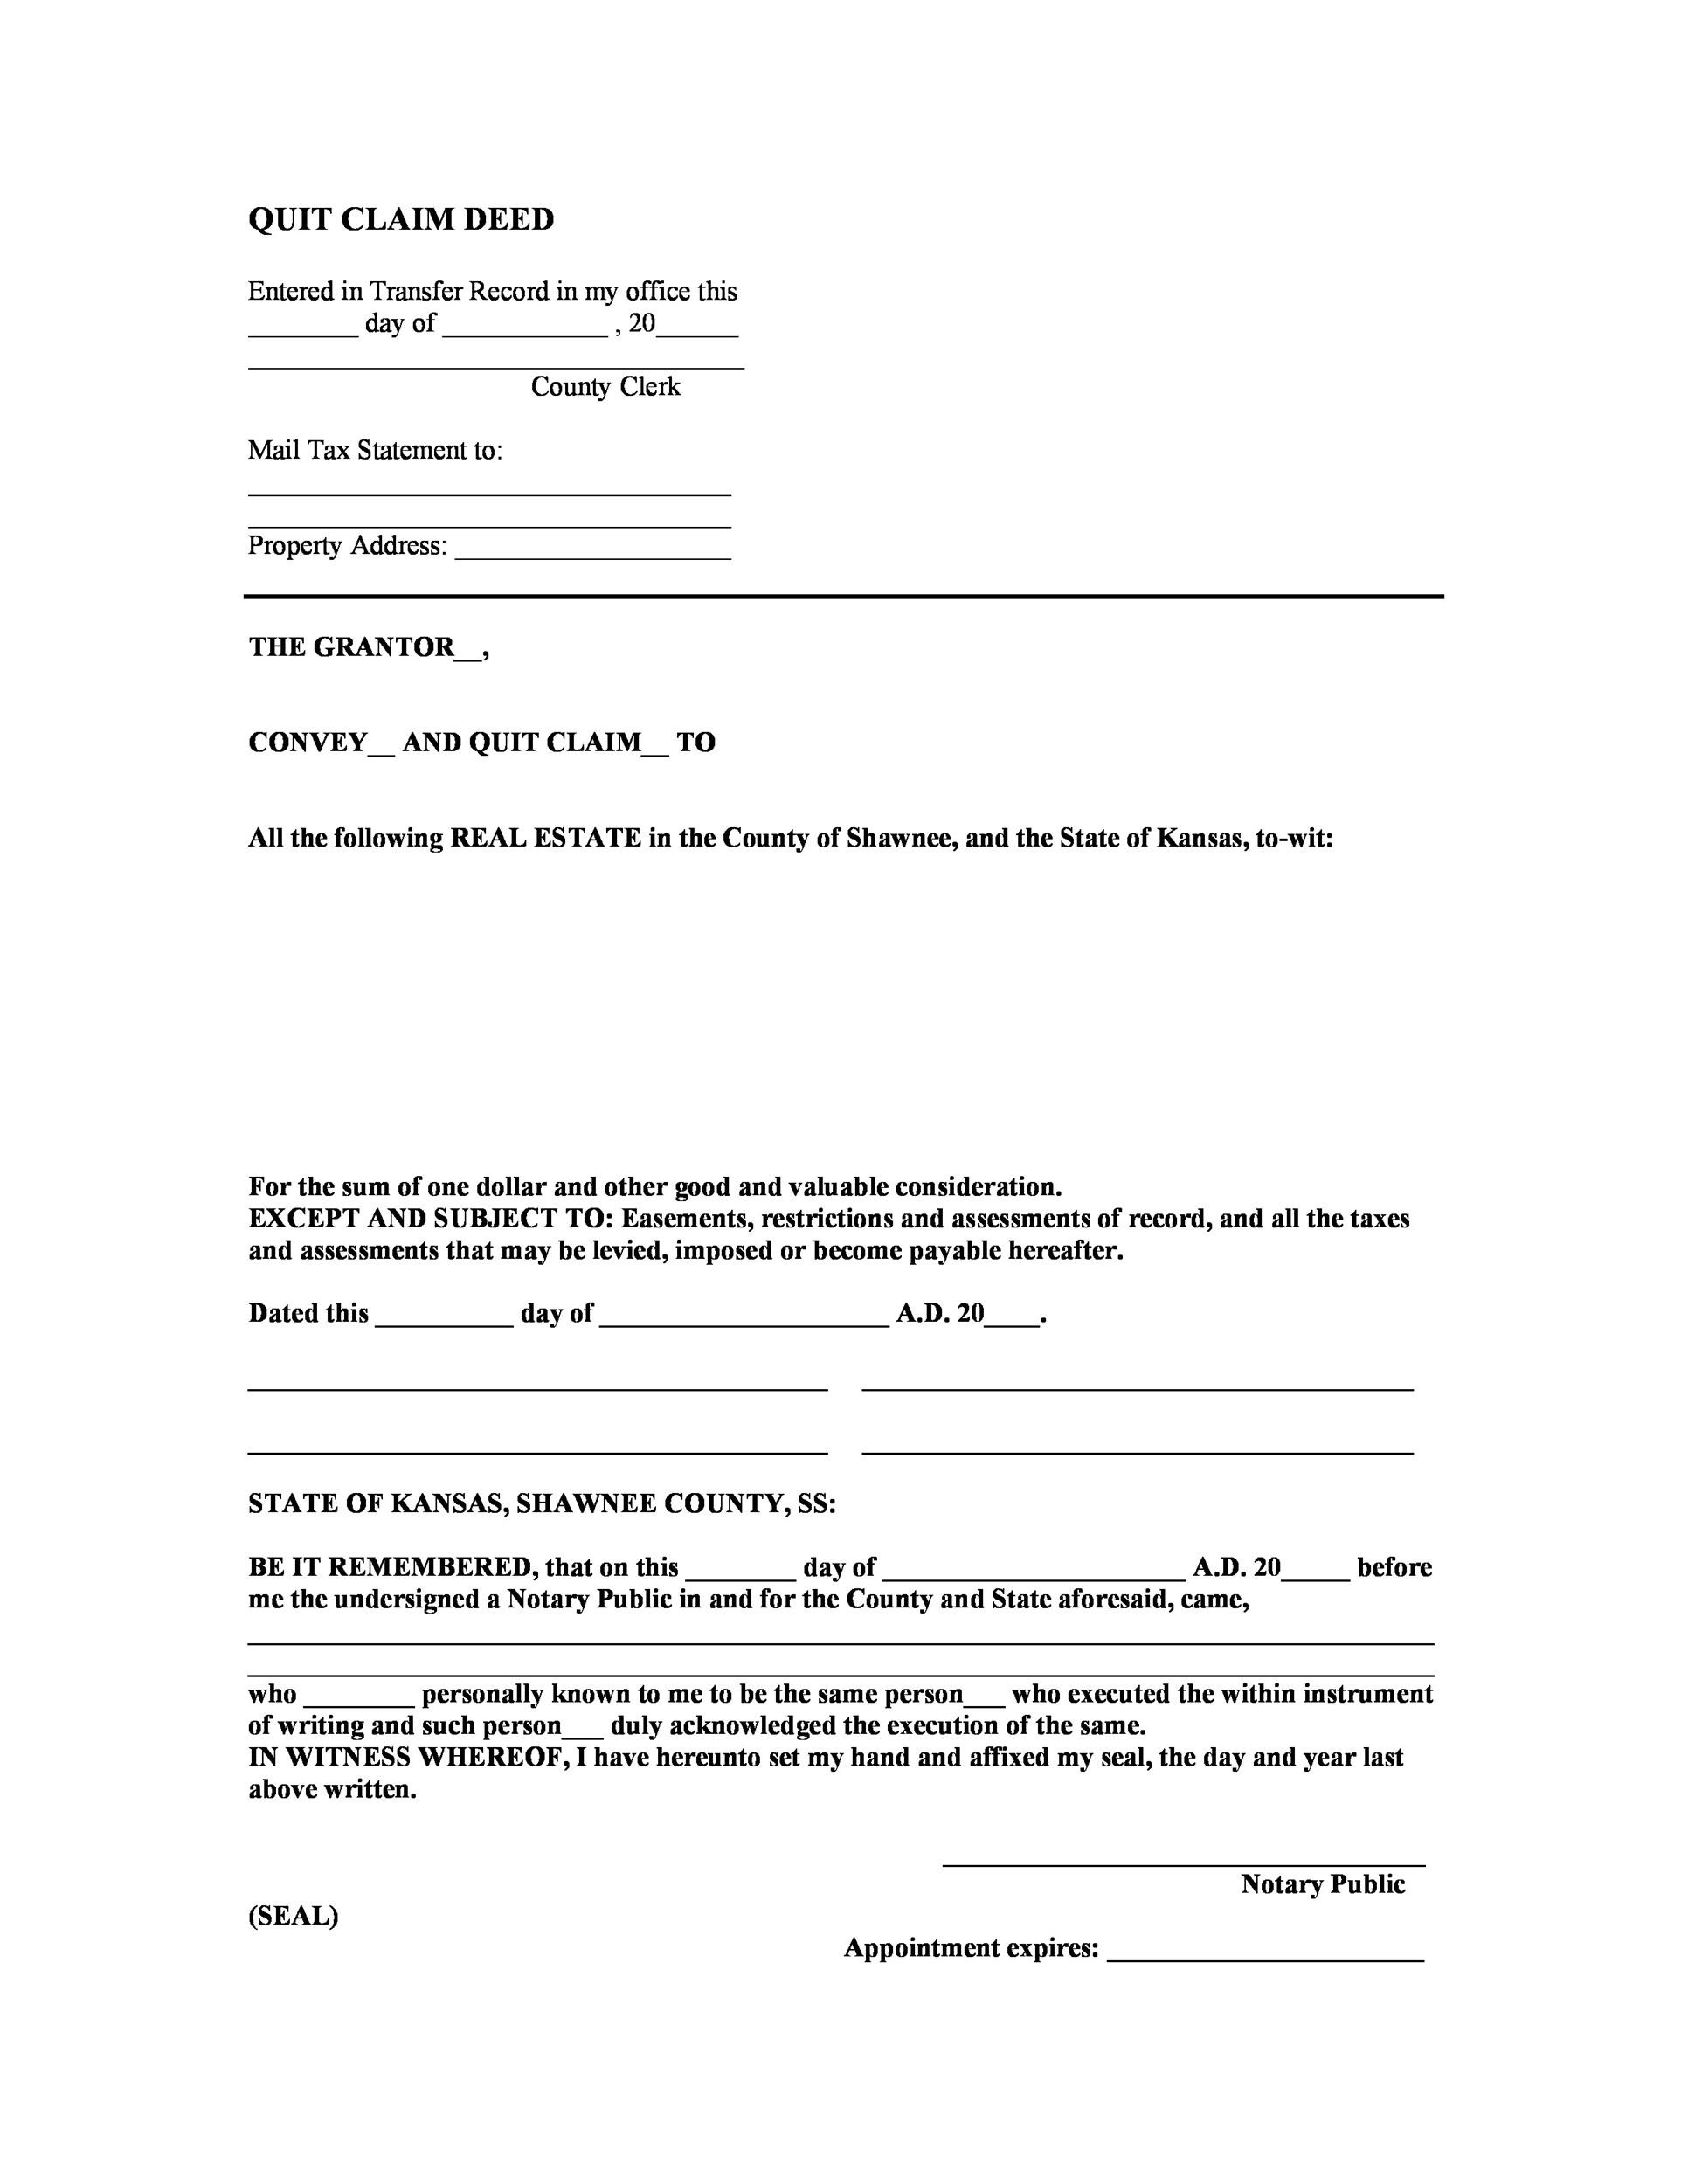 Free Quit Claim Deed Template 26